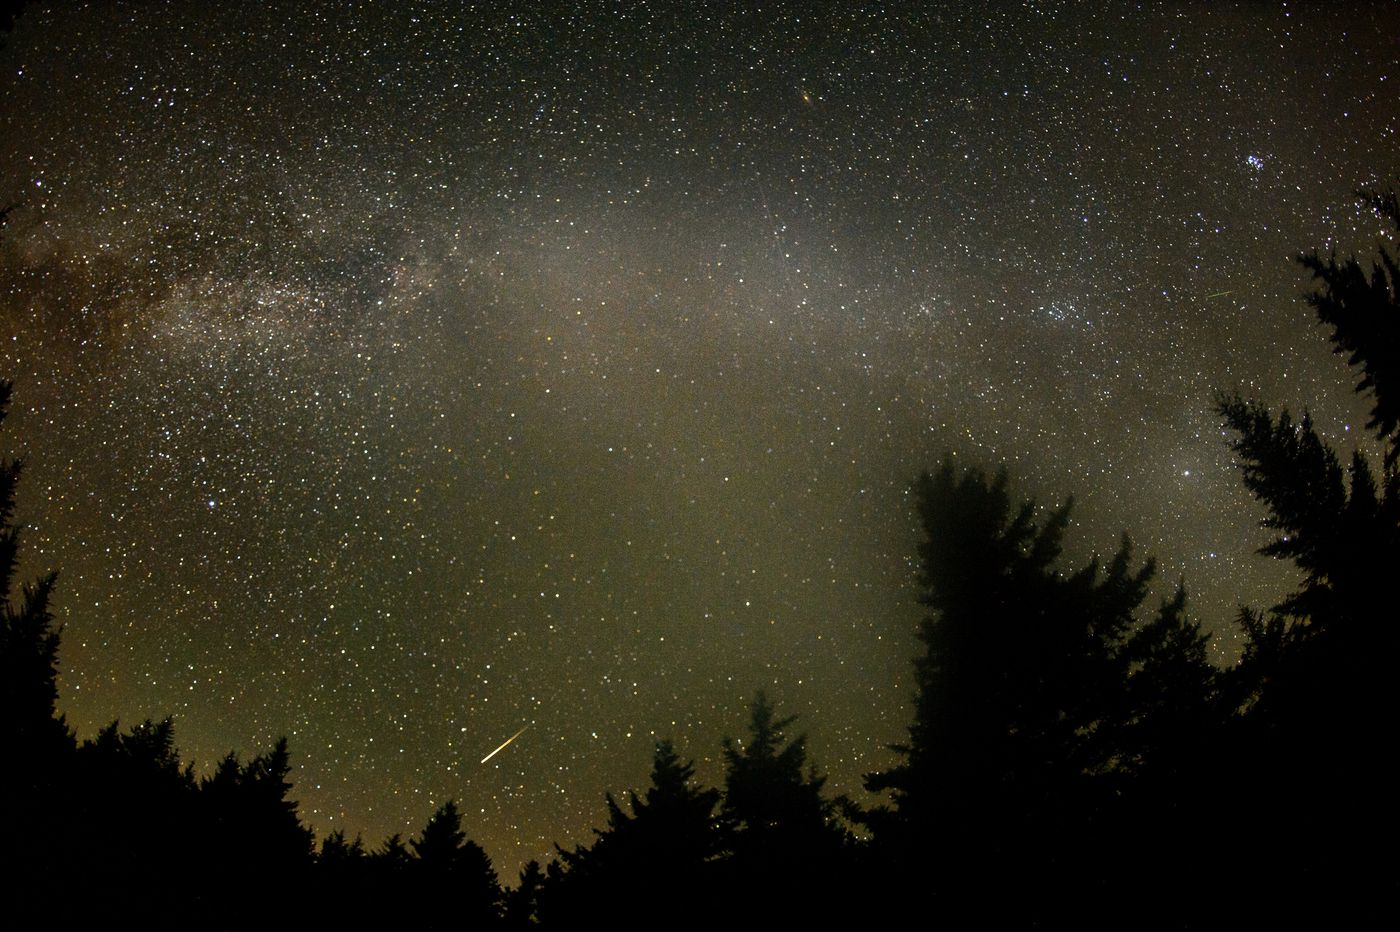 Meteor shower drought ends as Lyrids peak Tuesday night into Wednesday morning